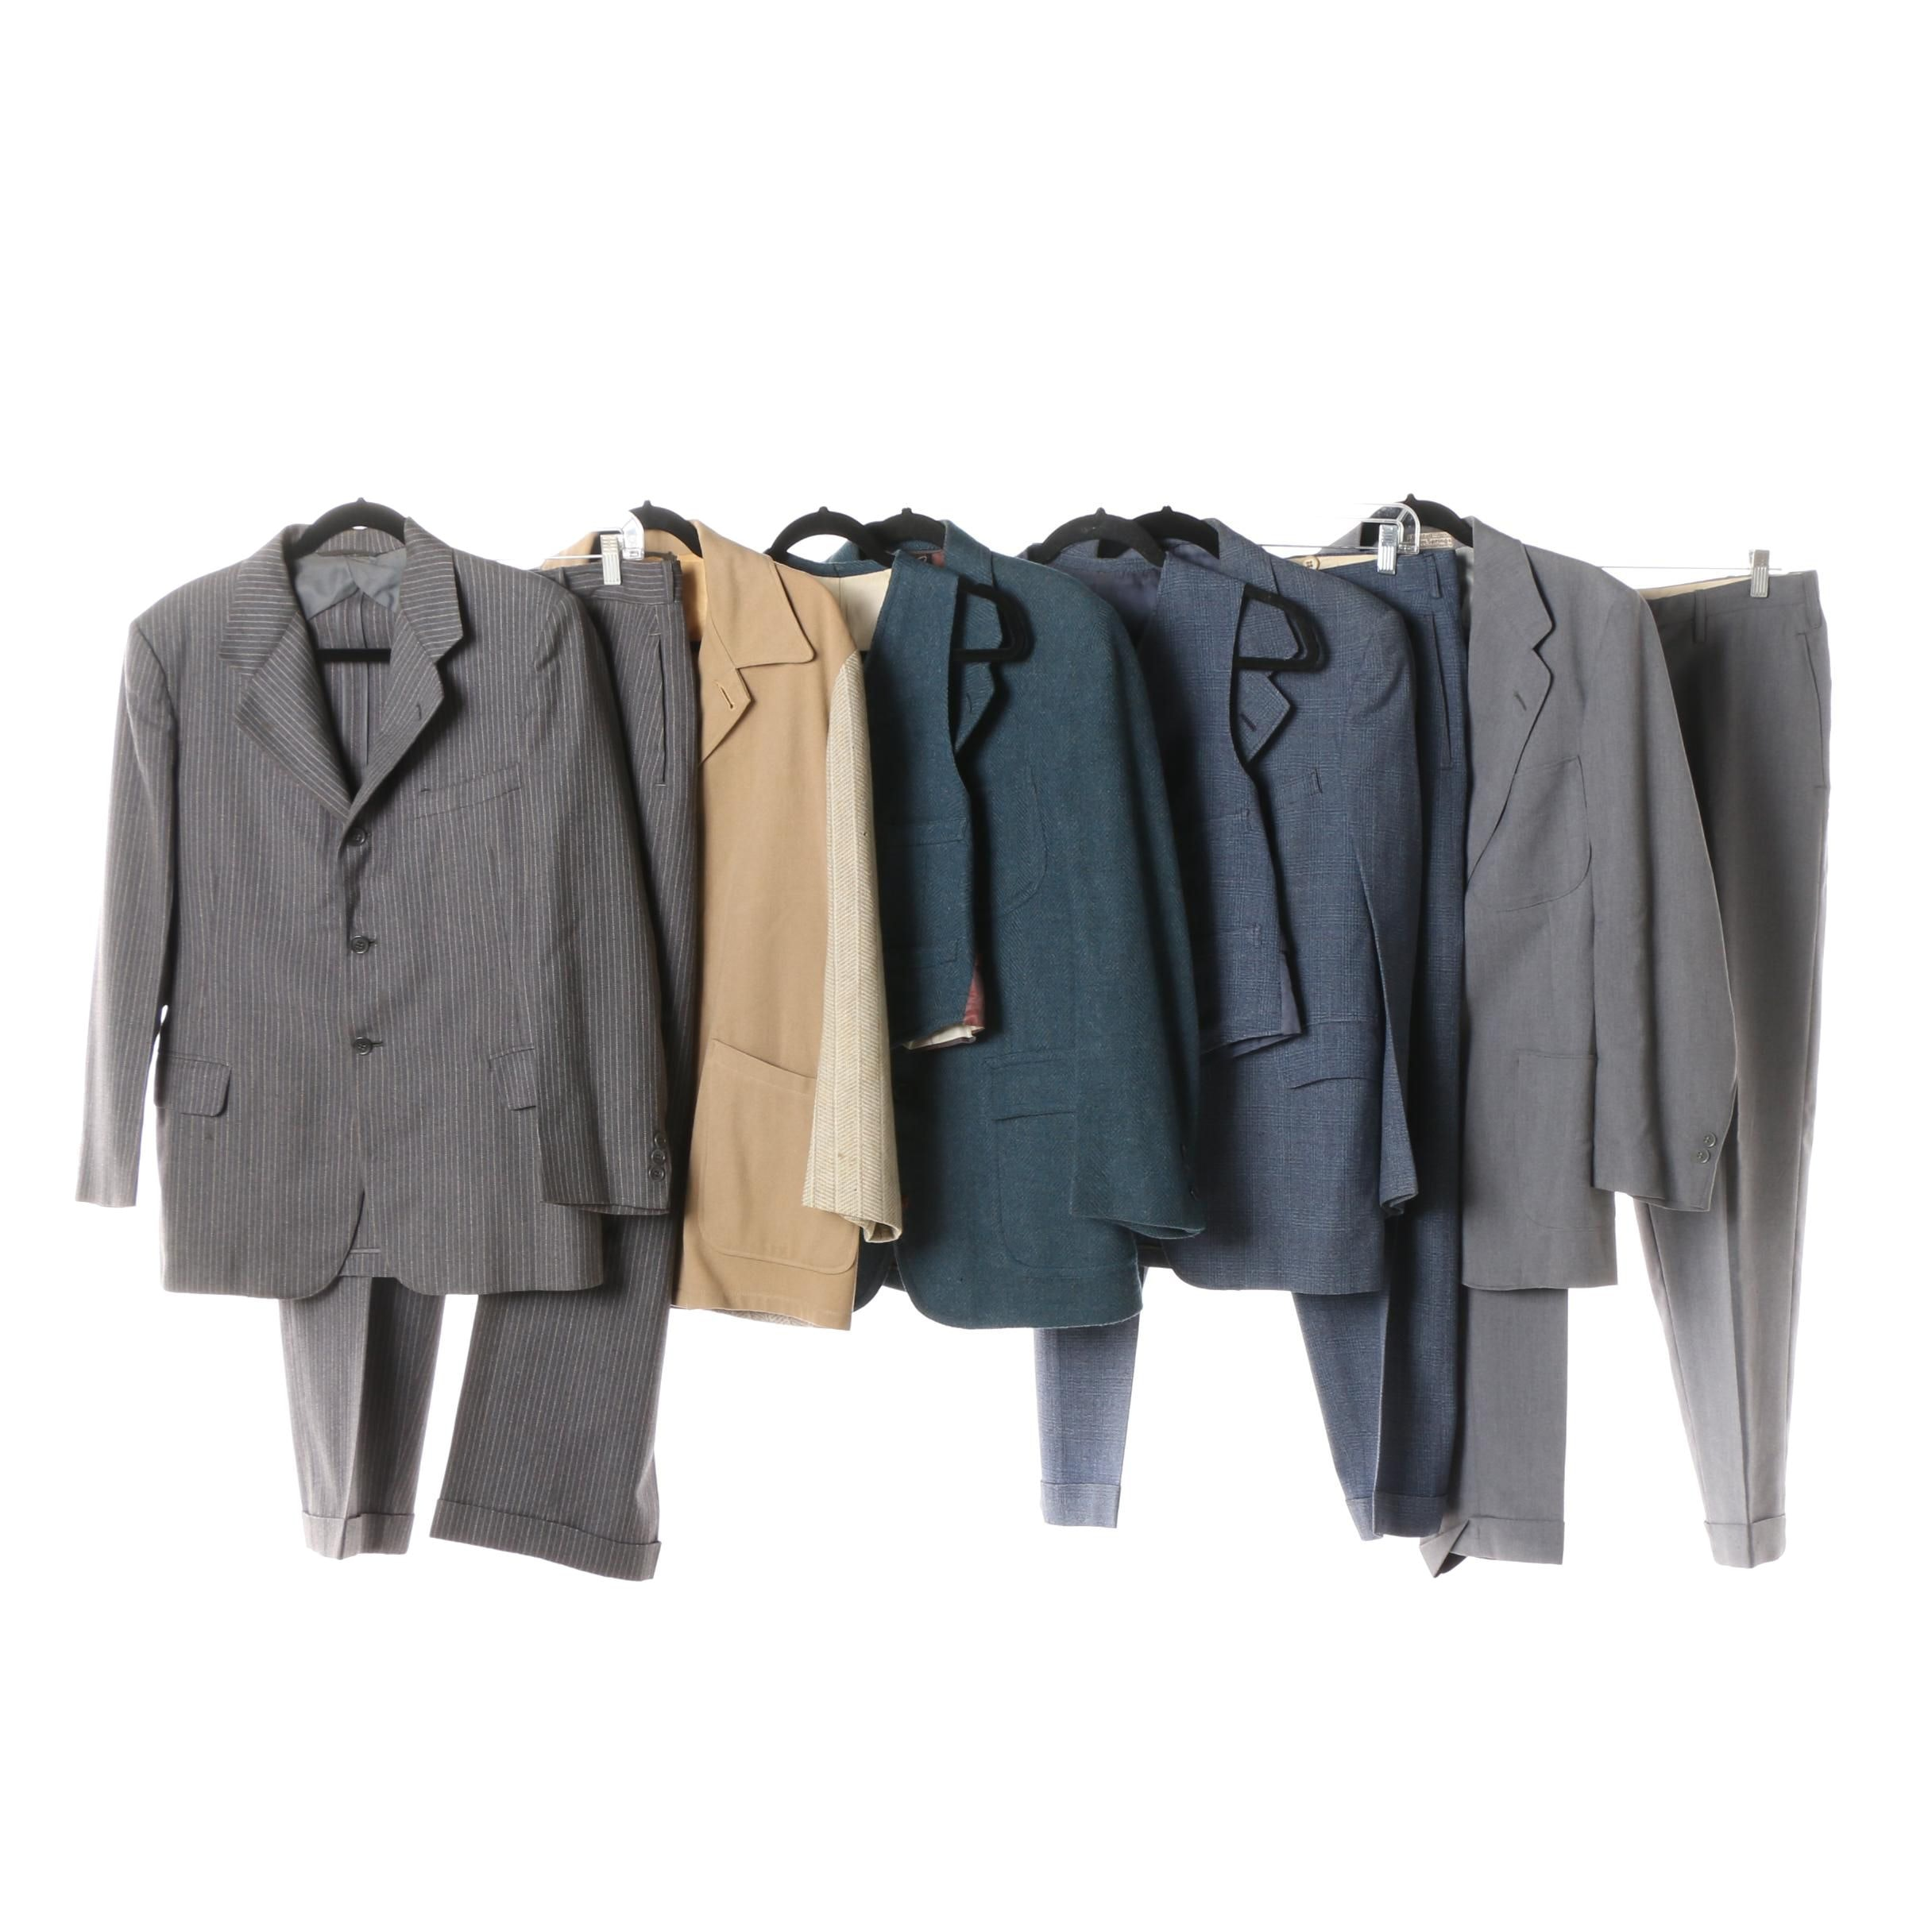 Men's Vintage Suits and Separates including Clipper Craft and Kennedy's